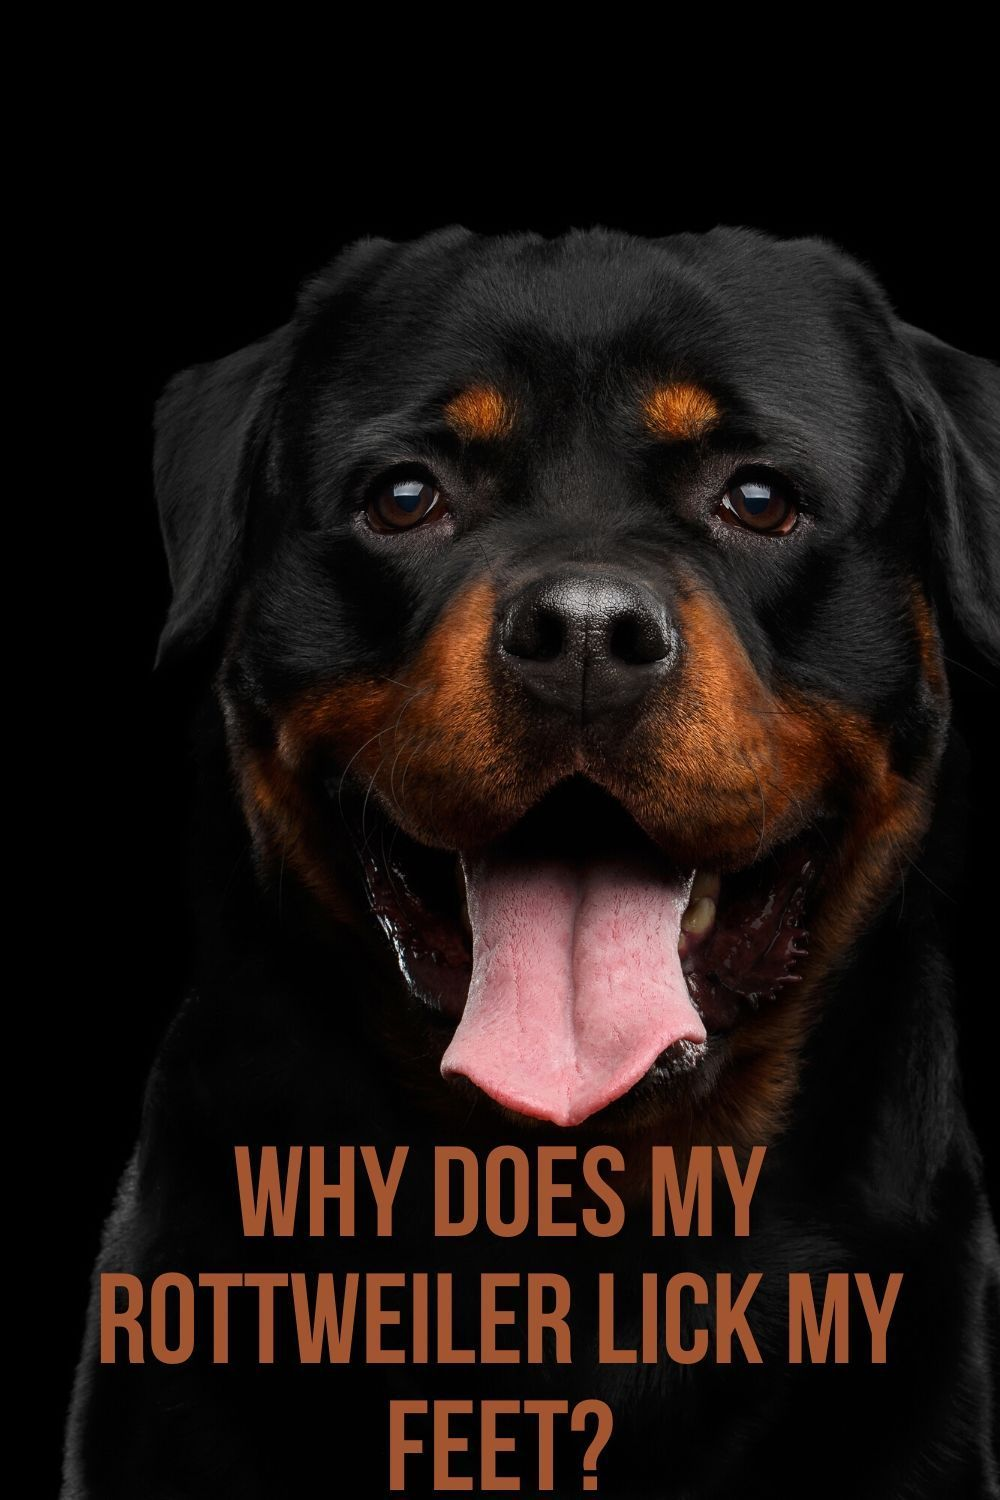 Why Does My Rottweiler Lick My Feet In 2020 Rottweiler Puppies Dog Barking At Night Rottweiler